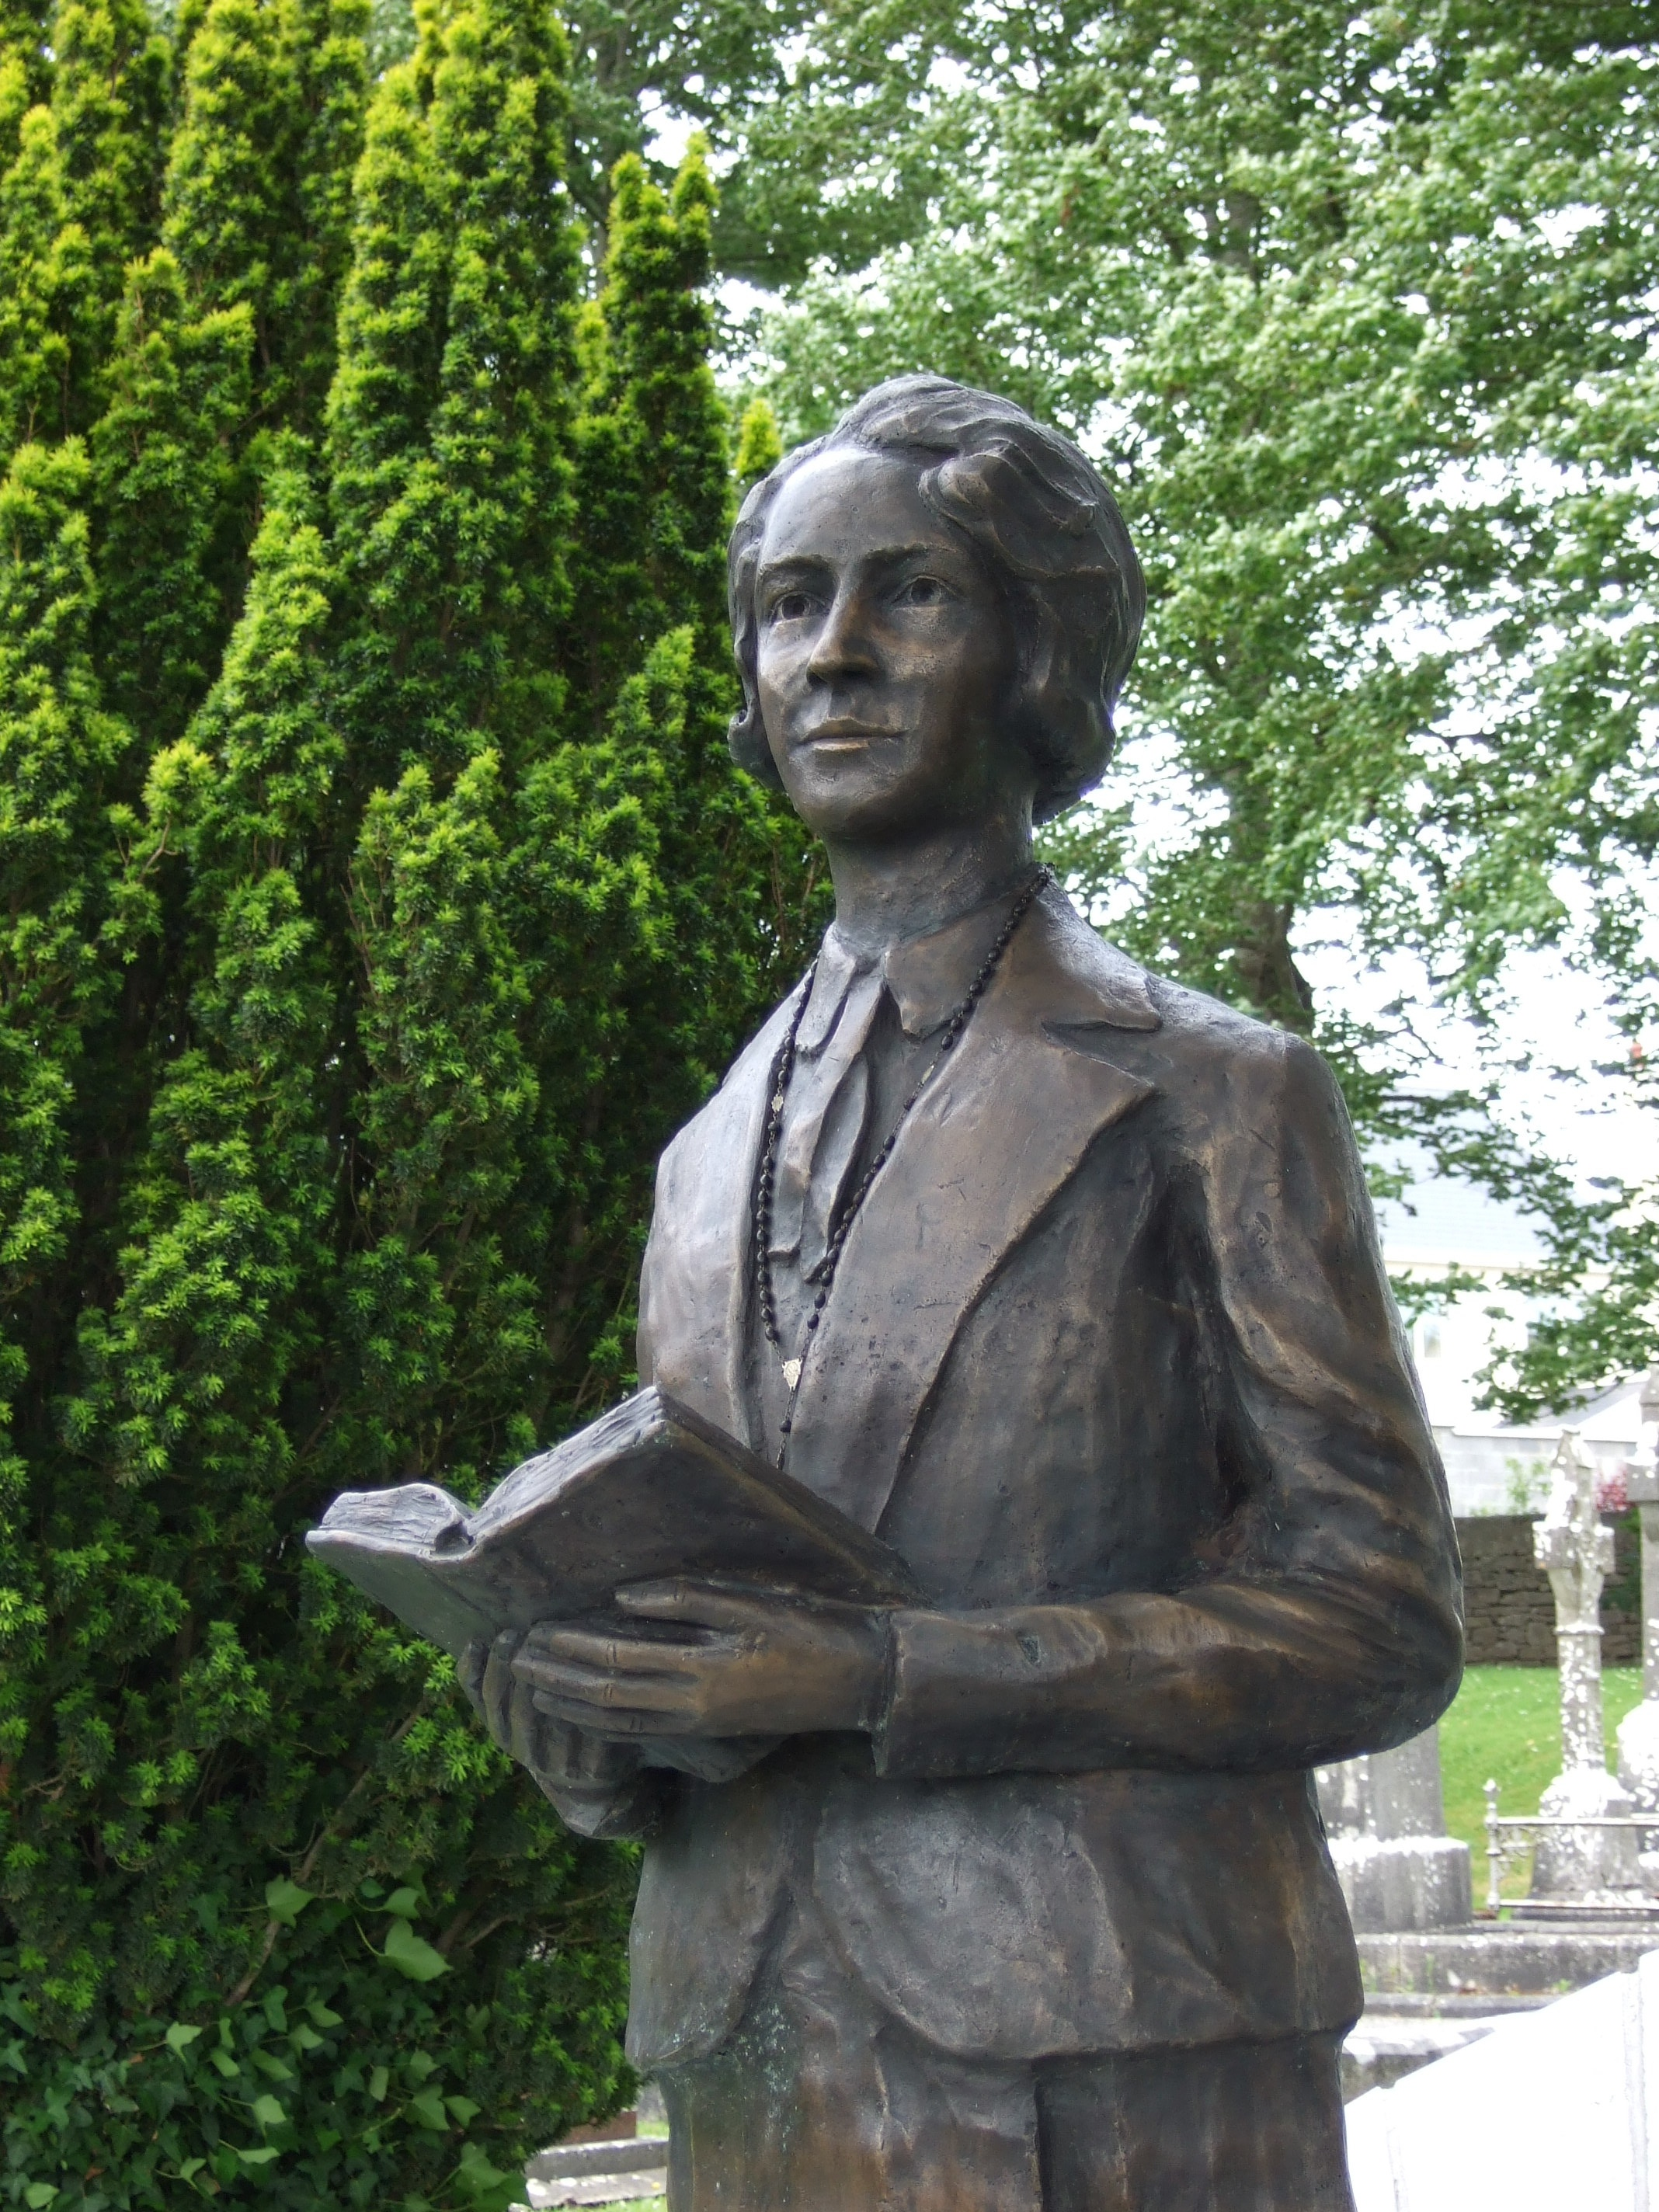 Statue of Edel in Castemagner, Co. Cork